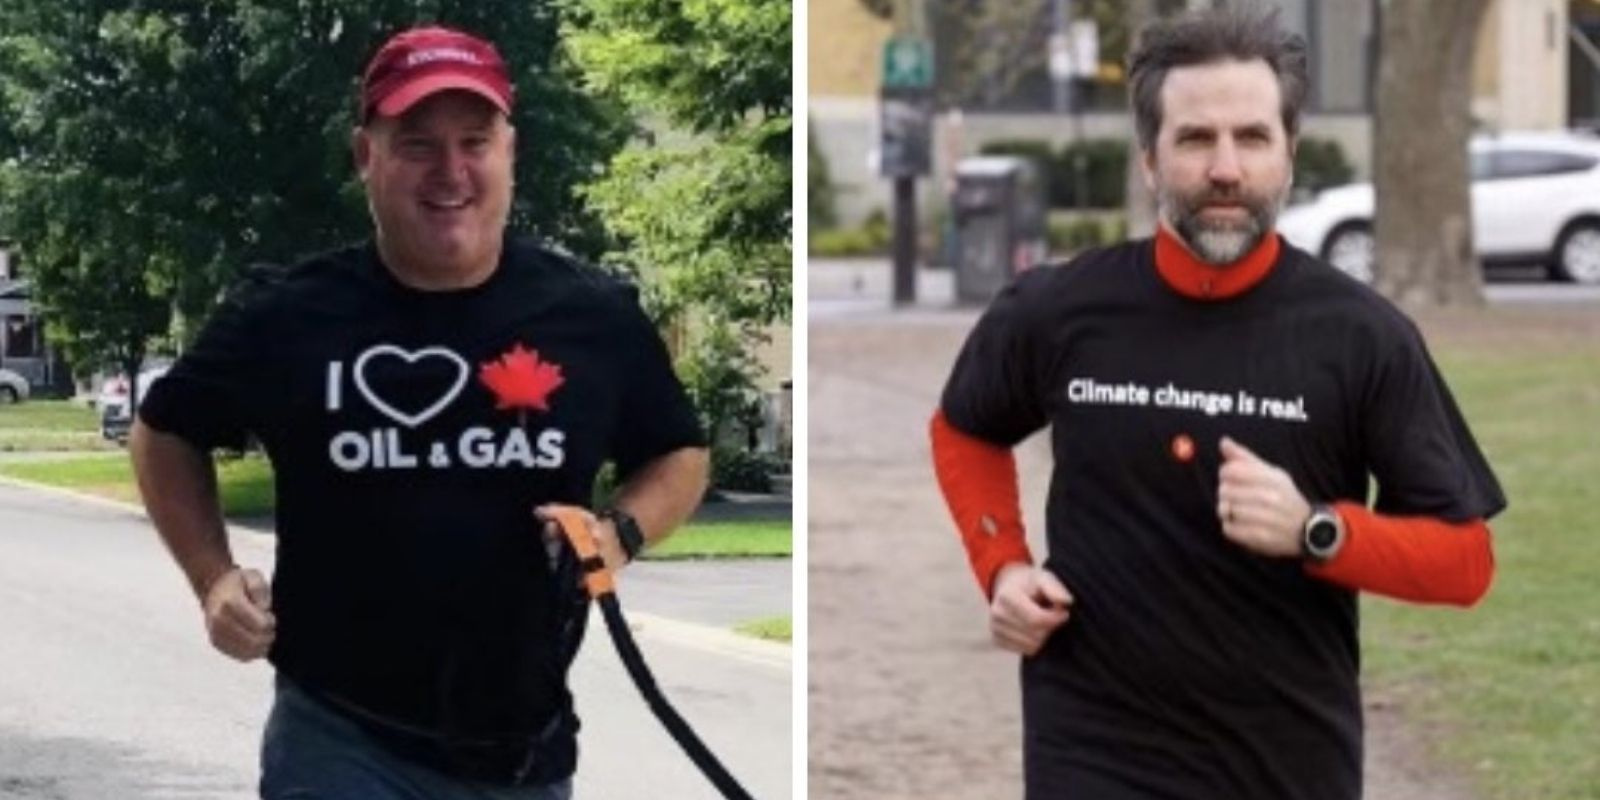 Trudeau minister mocks Erin O'Toole by wearing 'Climate change is real' shirt for Earth Day